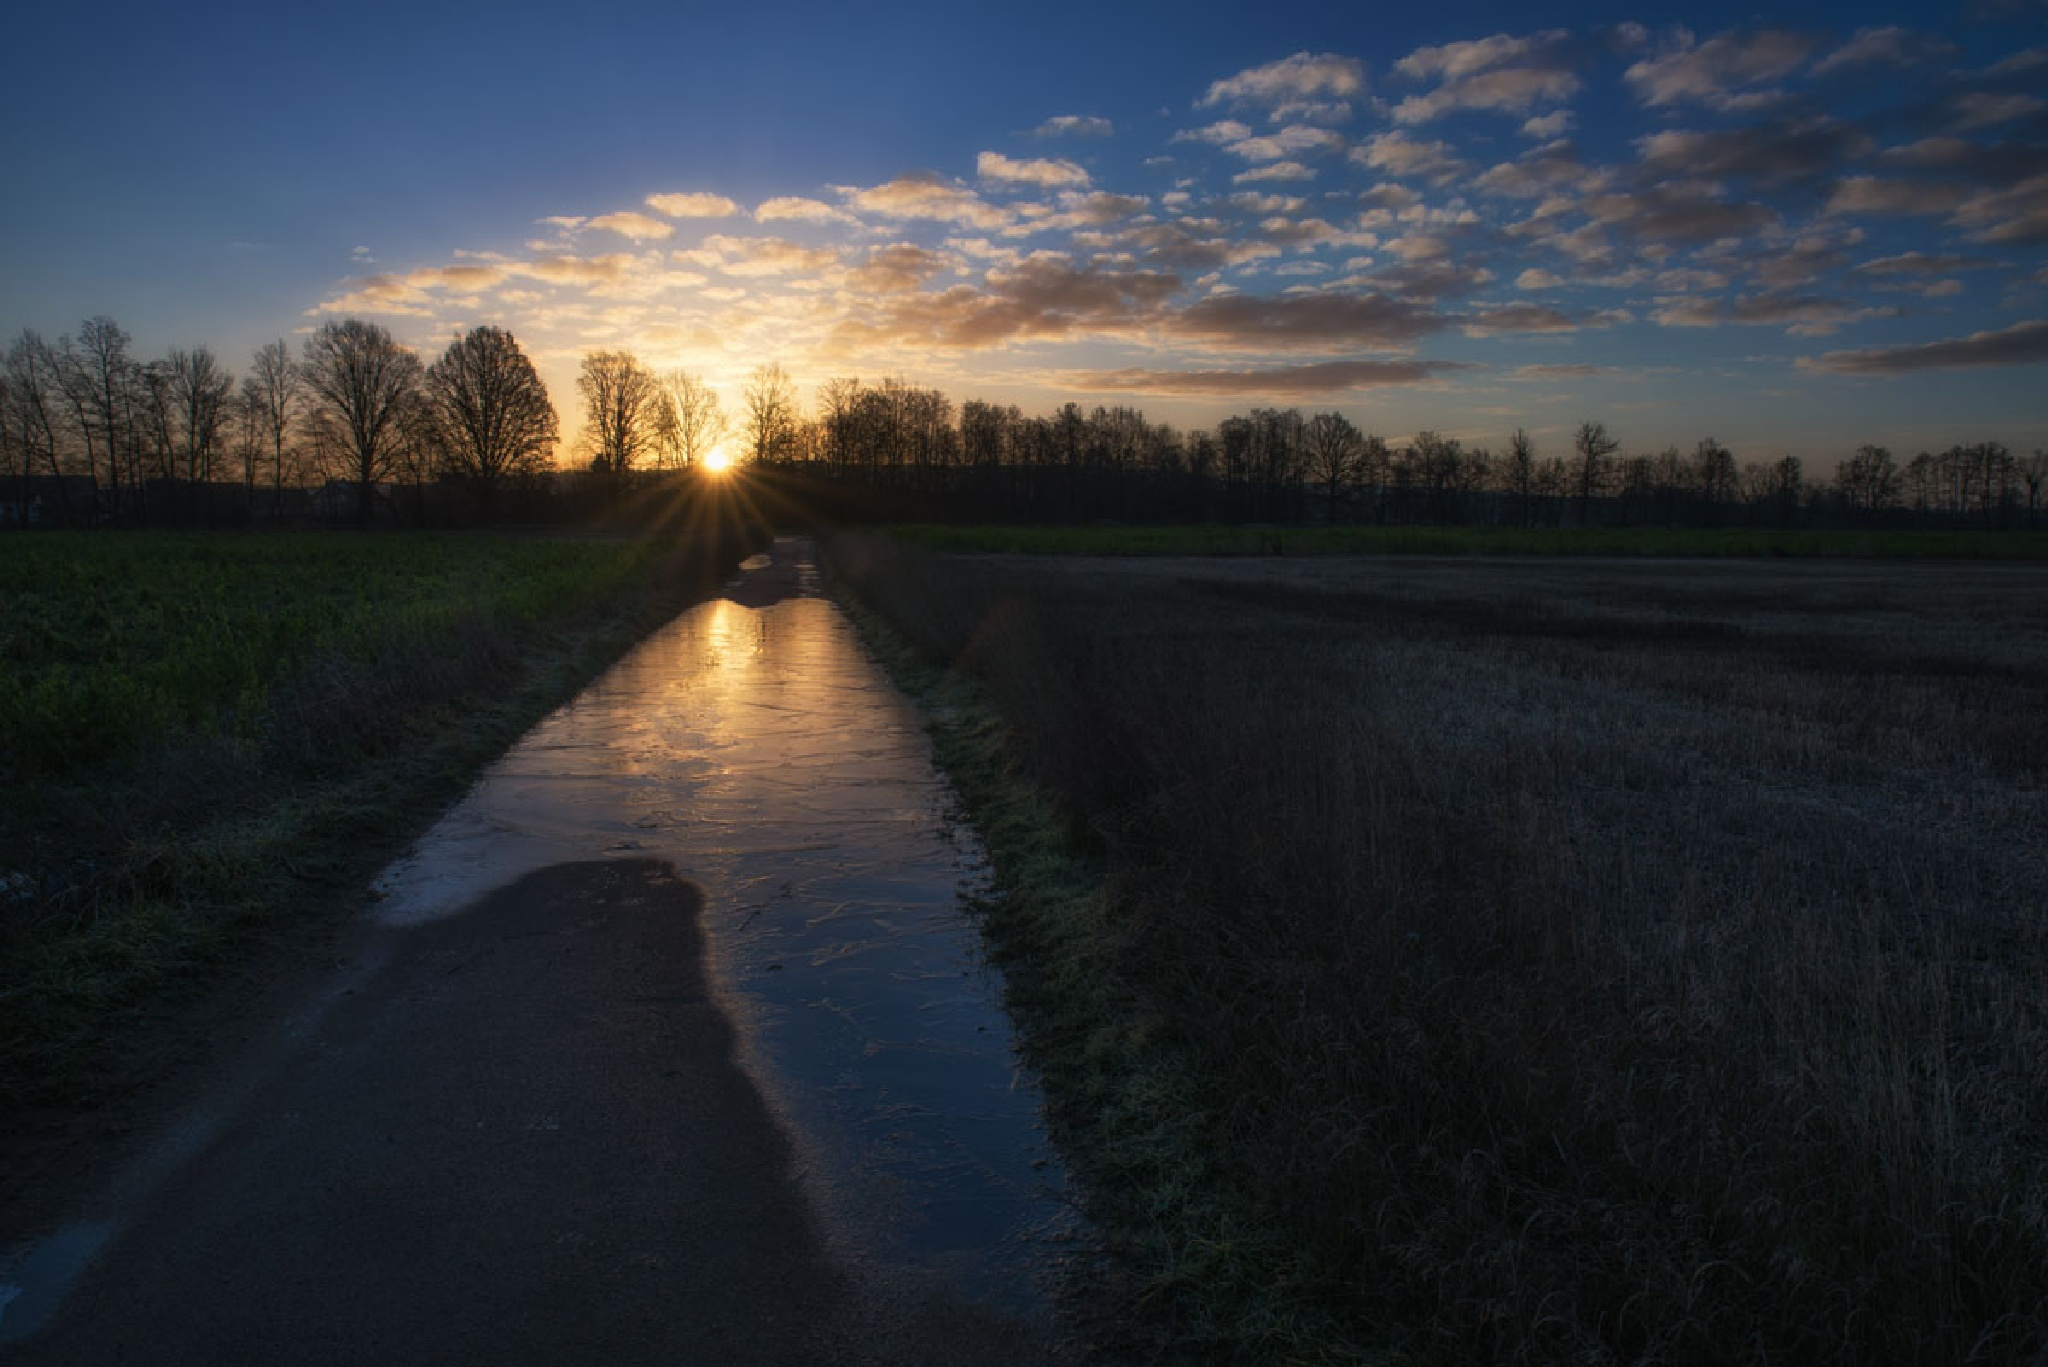 sunrise without snow by Hans Zitzler